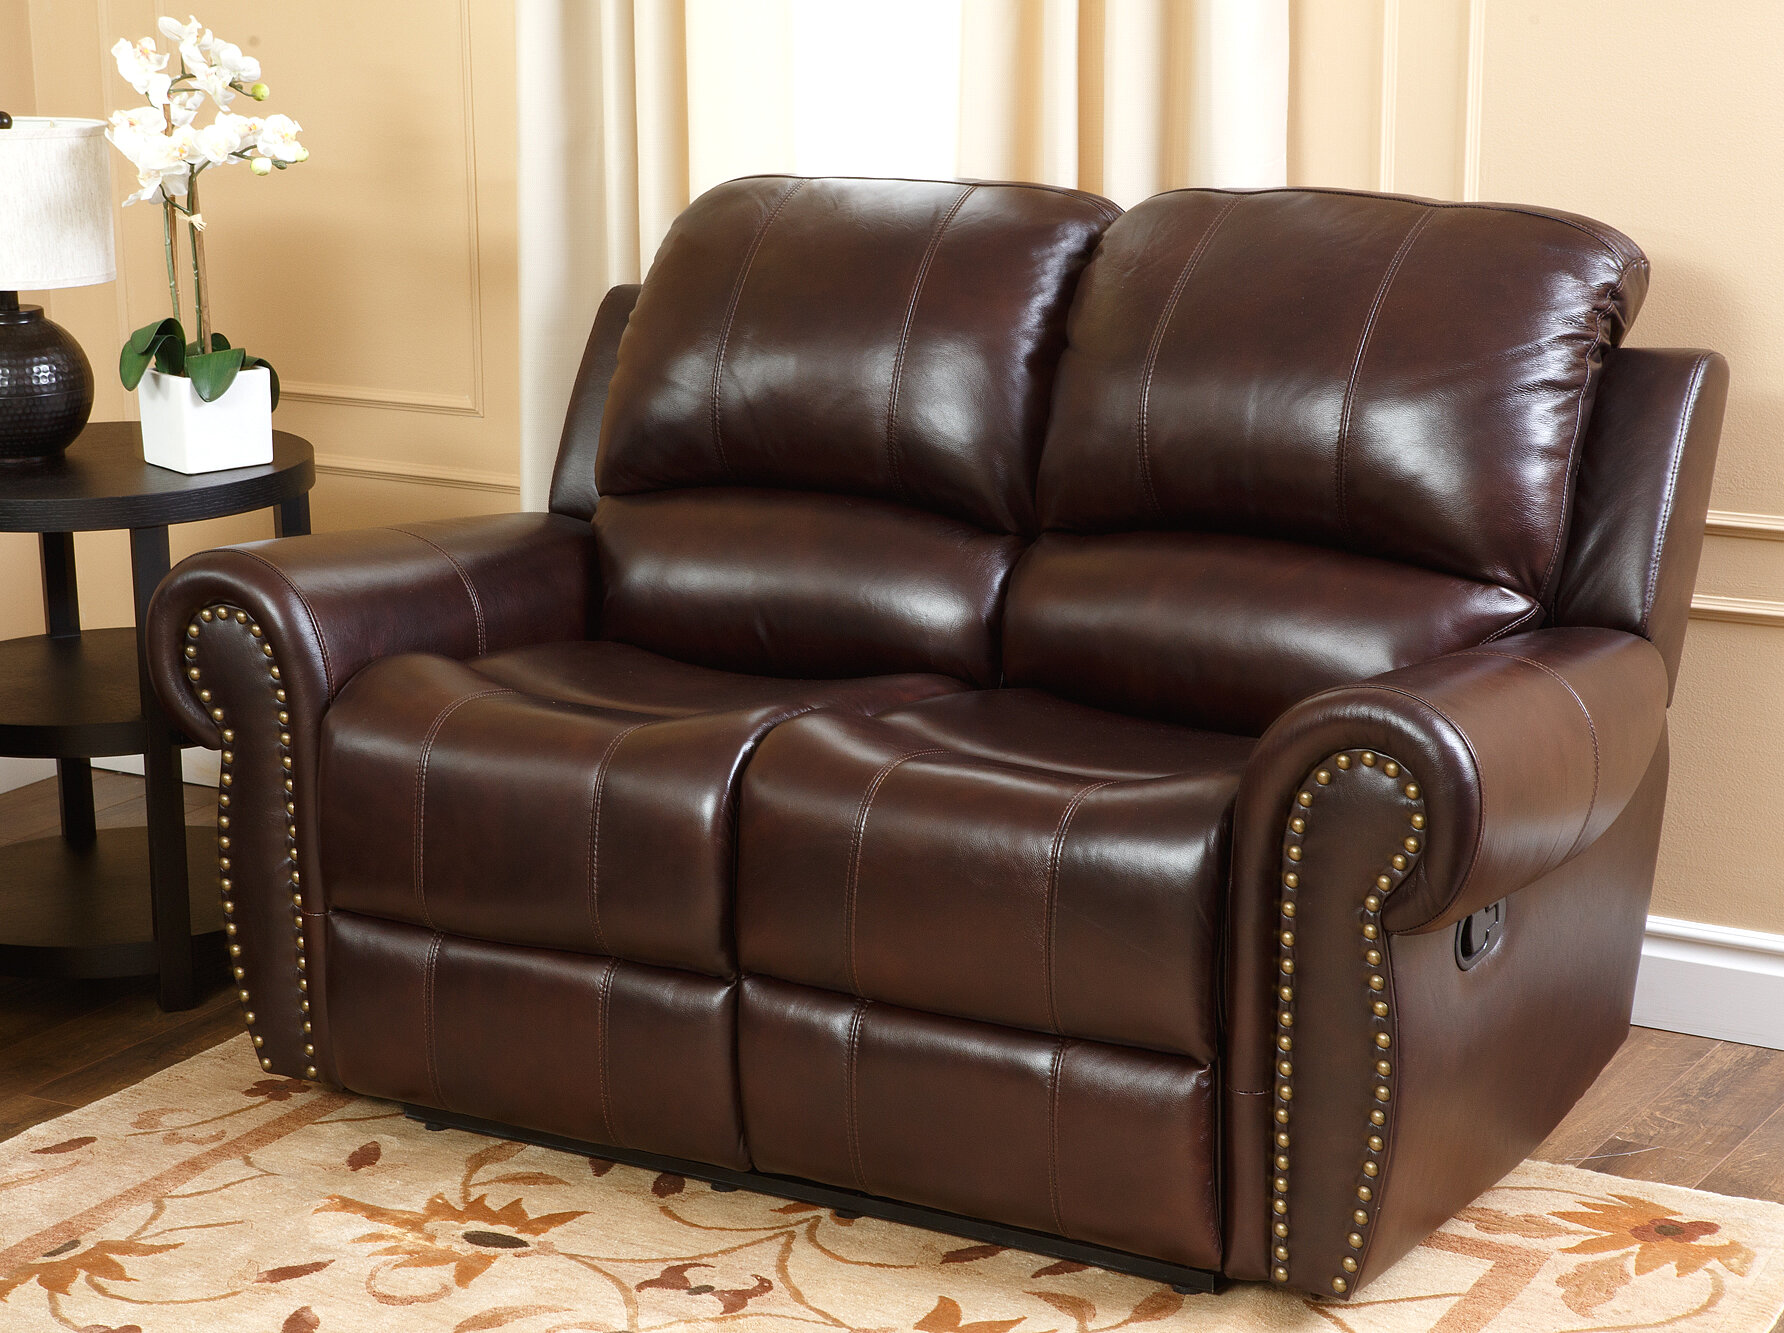 Barnsdale Reclining Italian Leather Sofa And Loveseat Set In Two Tone Burgundy